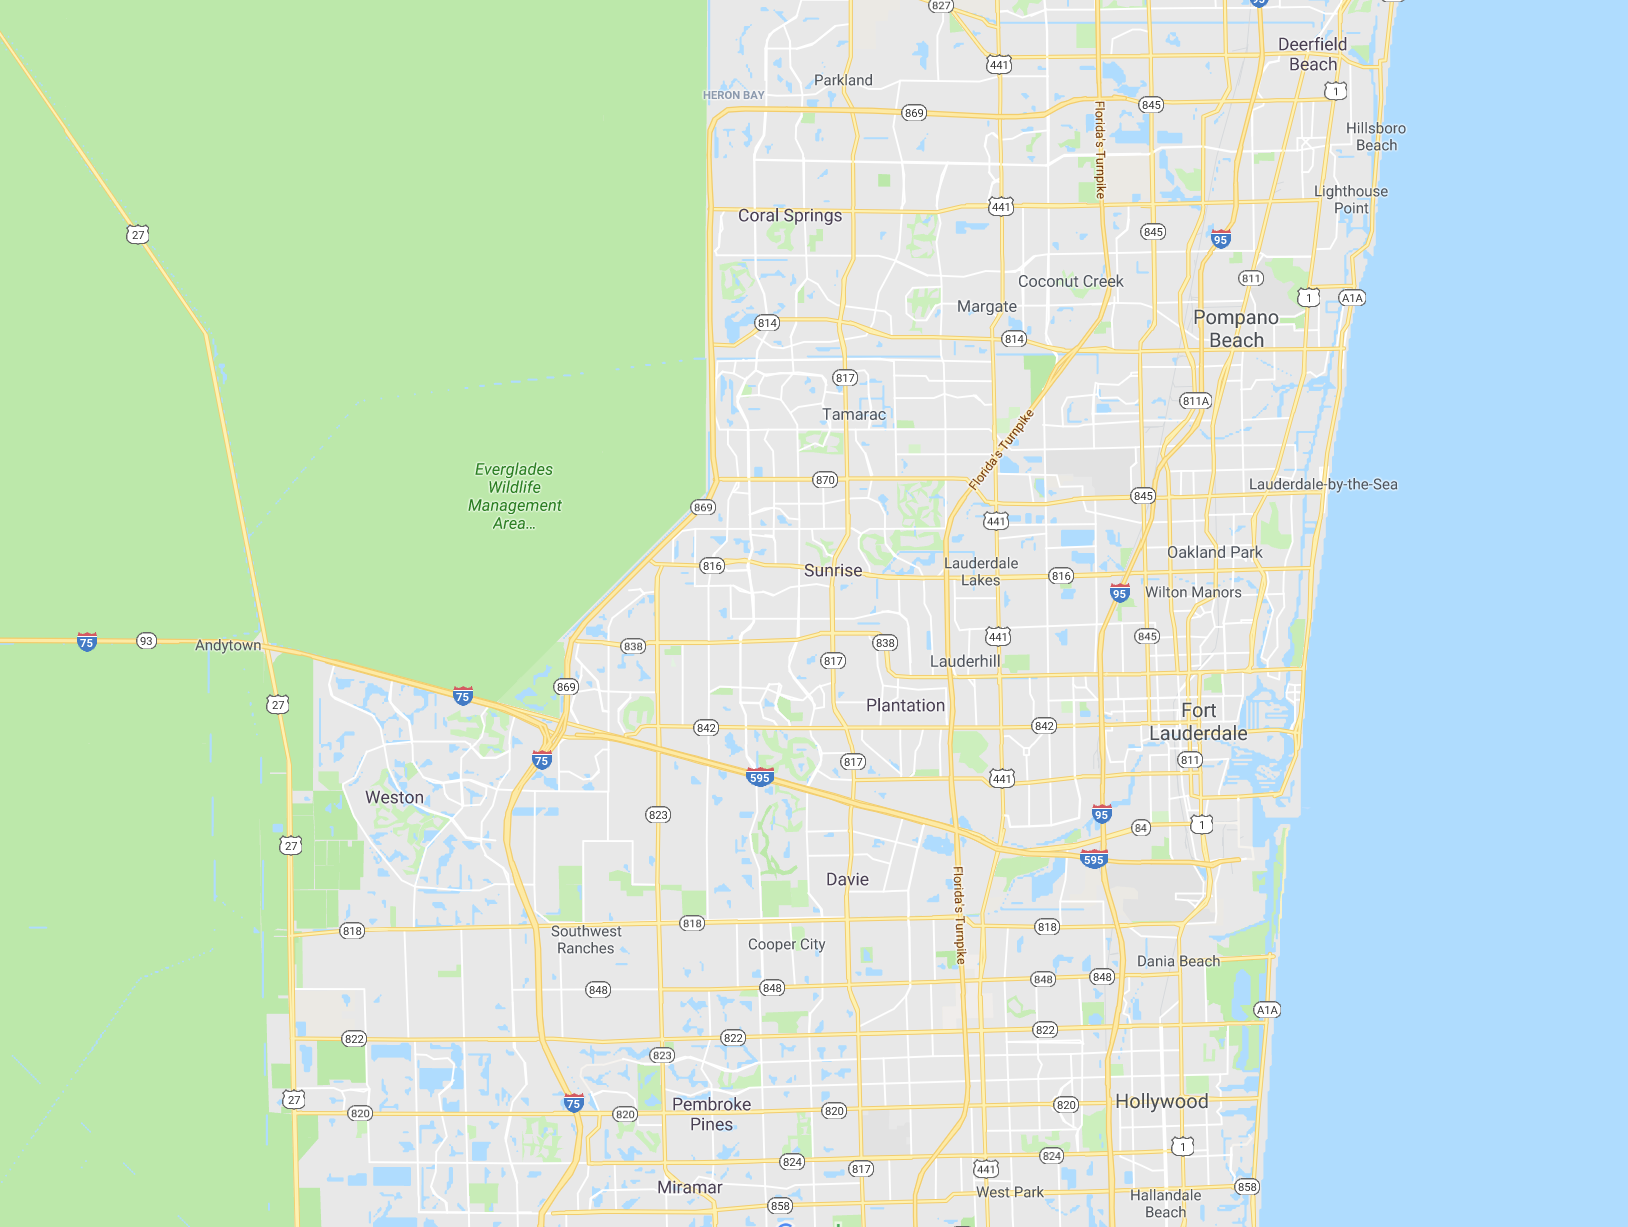 Select your location on the map